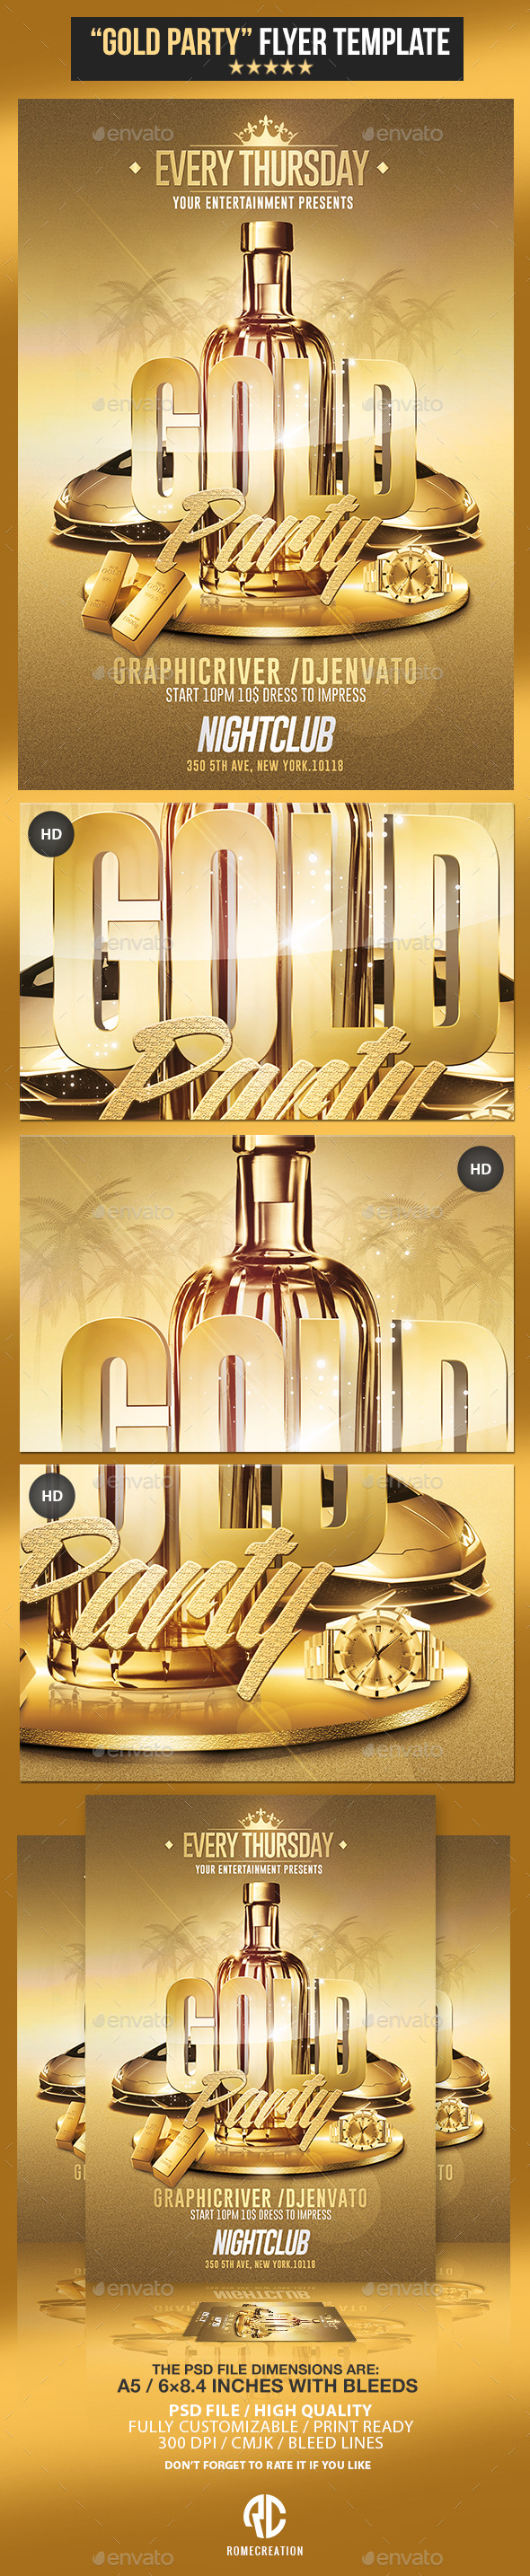 GraphicRiver Gold Party Psd Flyer Template 11129405